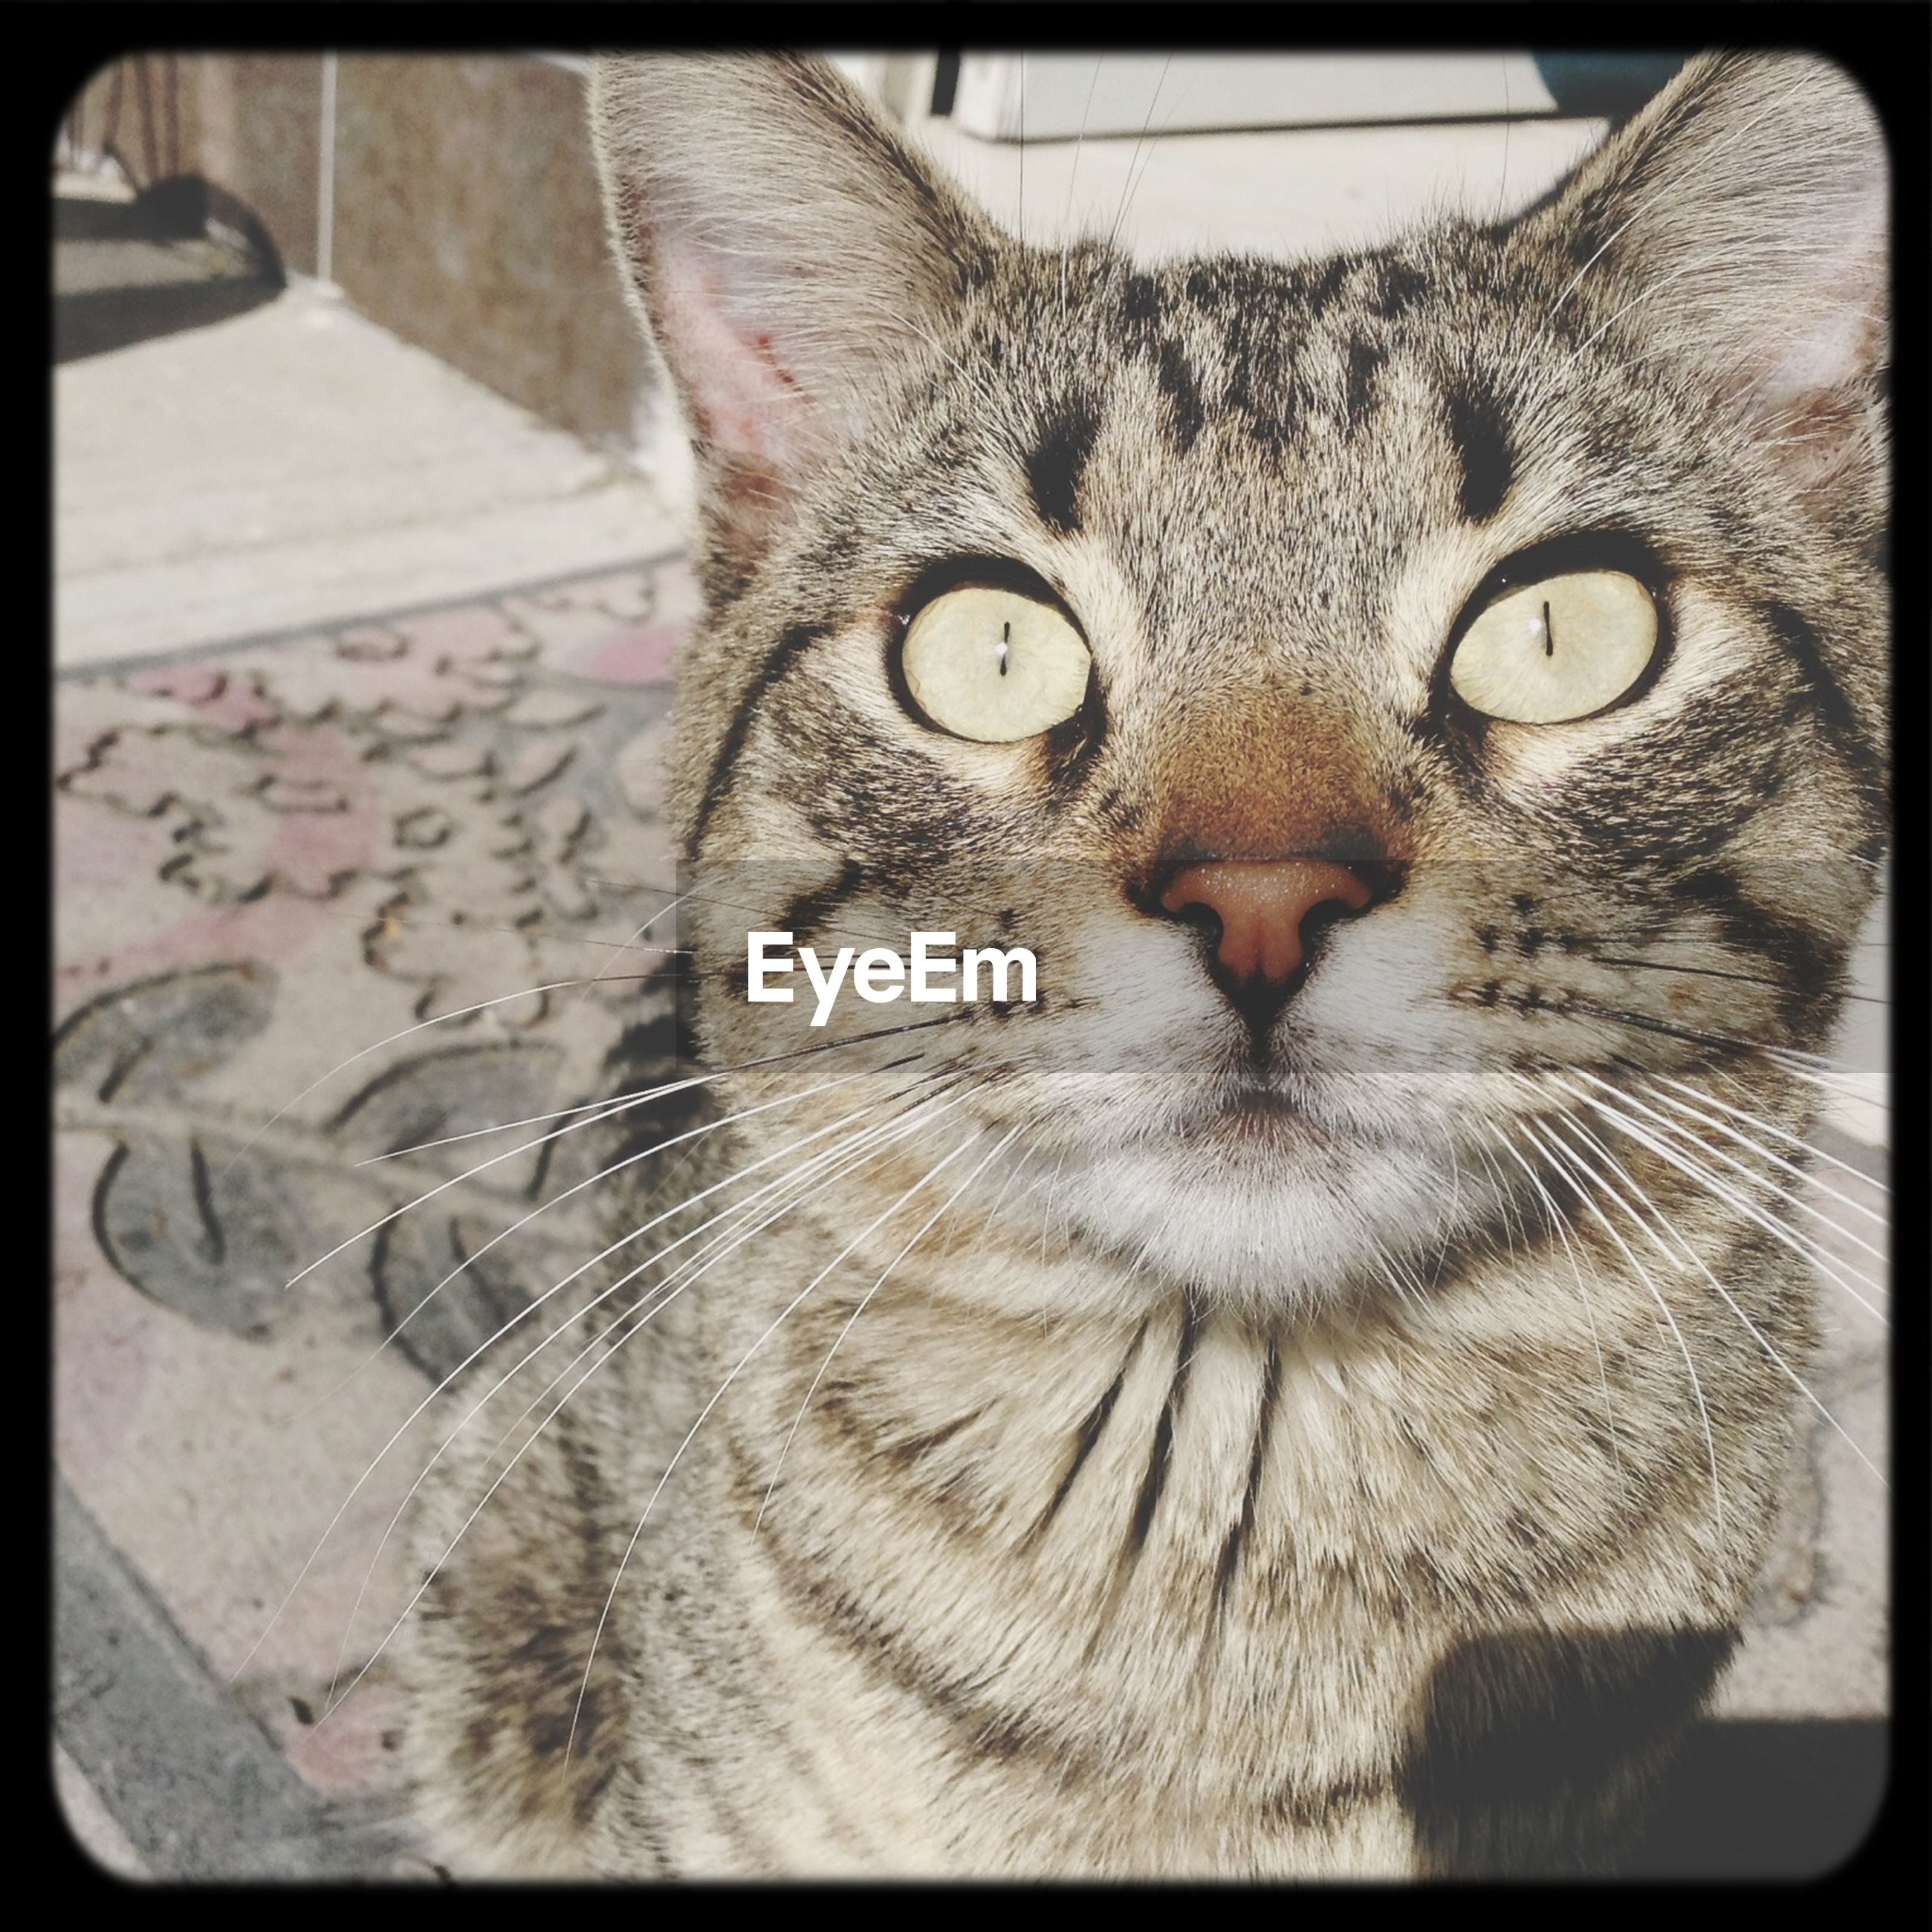 domestic cat, cat, one animal, pets, animal themes, domestic animals, feline, transfer print, whisker, mammal, portrait, looking at camera, auto post production filter, indoors, close-up, animal head, animal eye, relaxation, staring, front view